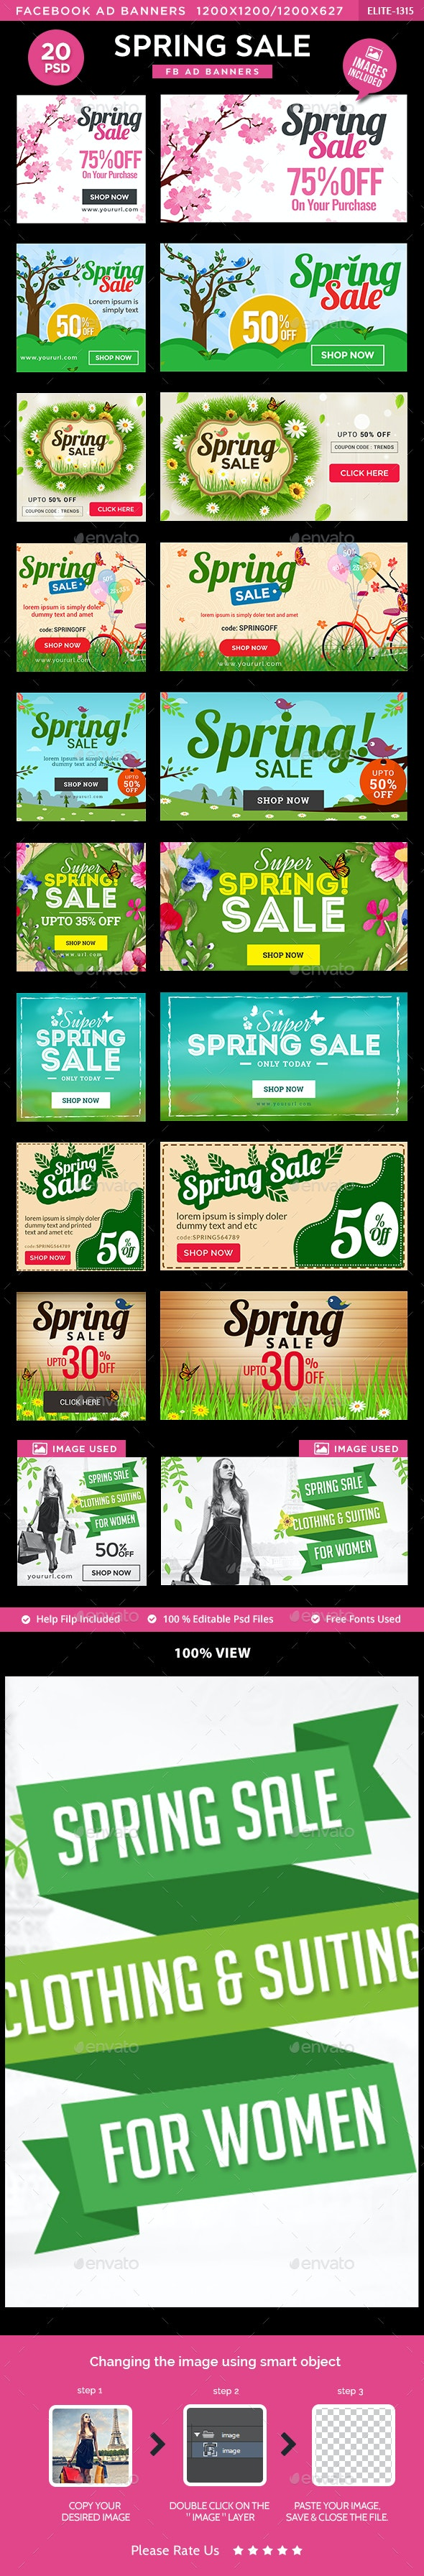 Spring Sale Facebook Banners - 10 Designs - 20 Banners - Social Media Web Elements